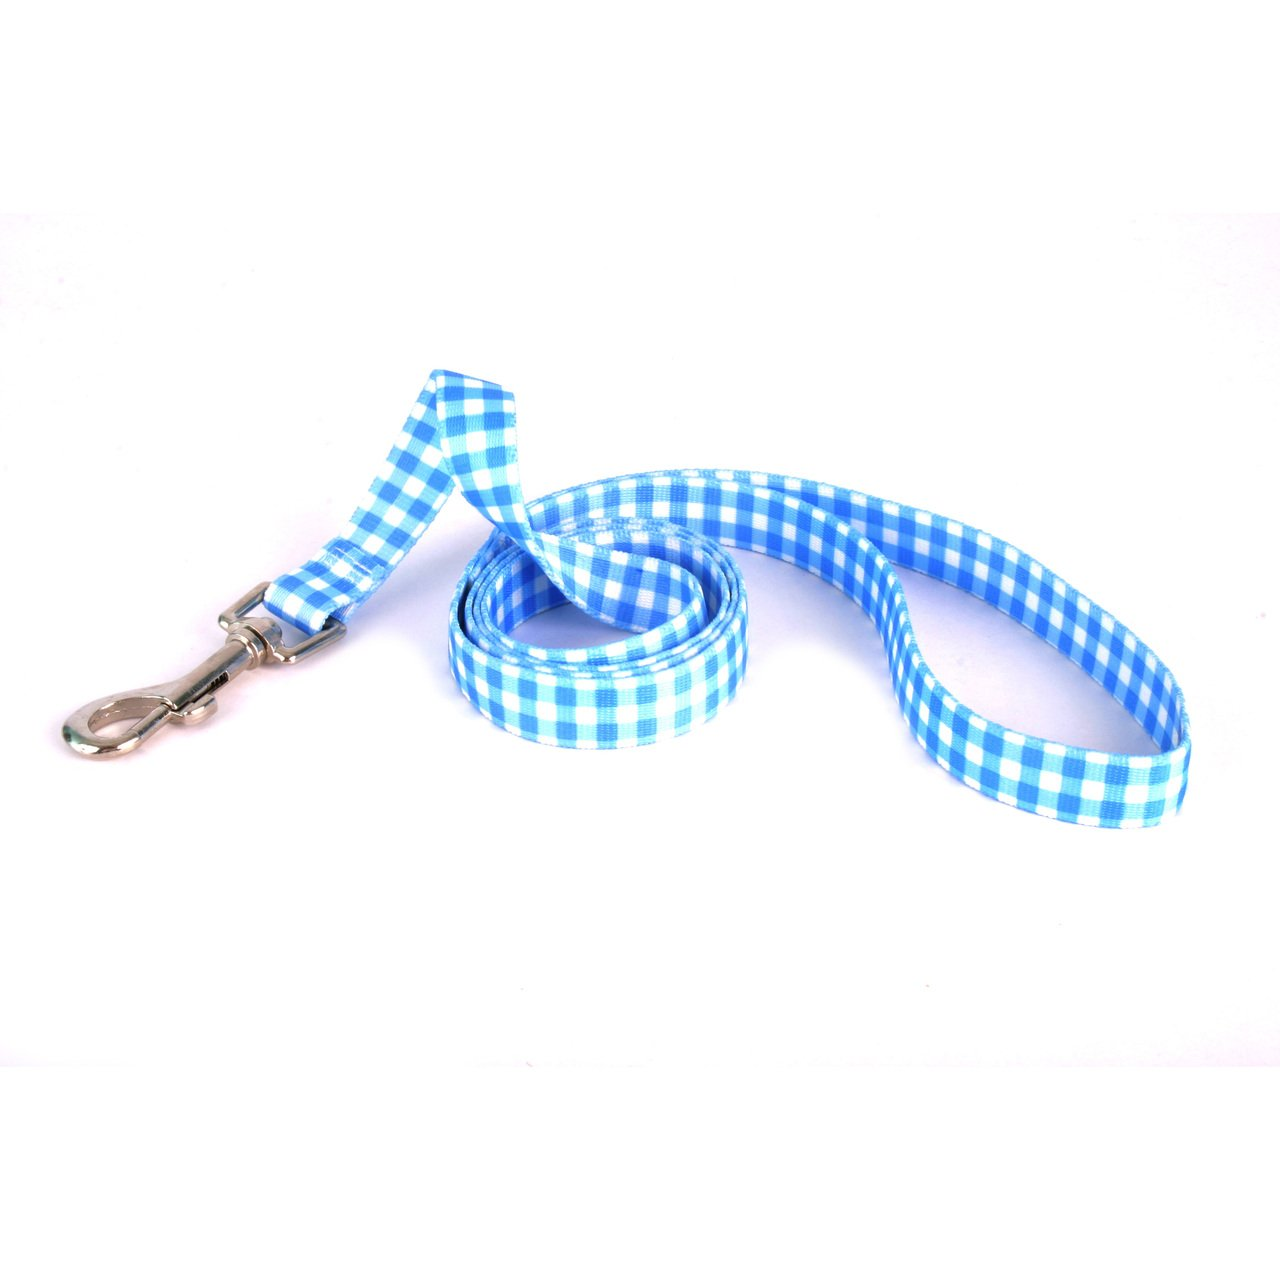 Yellow Dog Design Gingham Blue Dog Leash 3/4'' Wide and 5' (60'') Long, Small/Medium